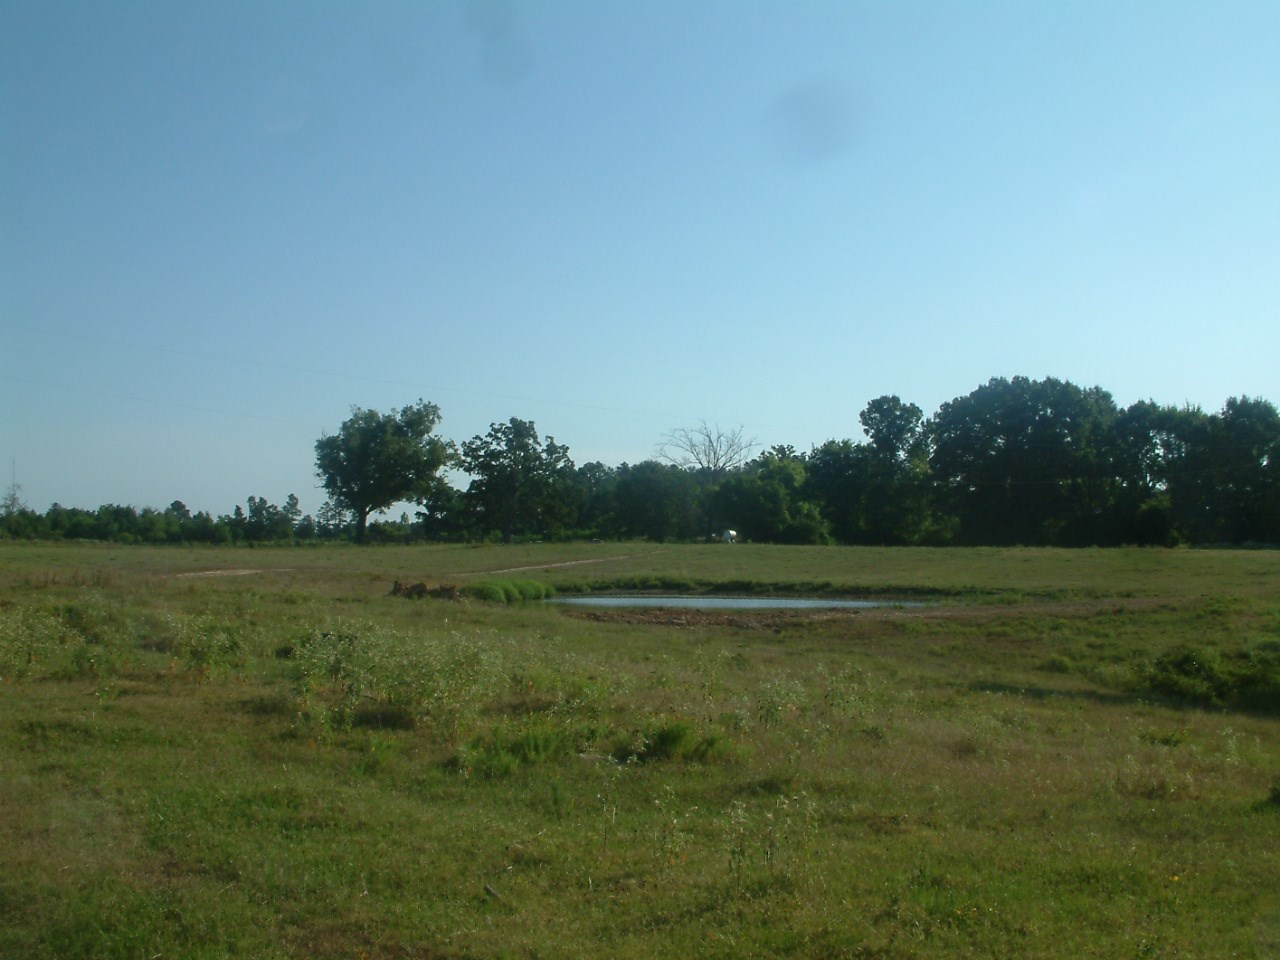 95 Acre Cattle/Hunting/Recreation Ranch For Sale With Home